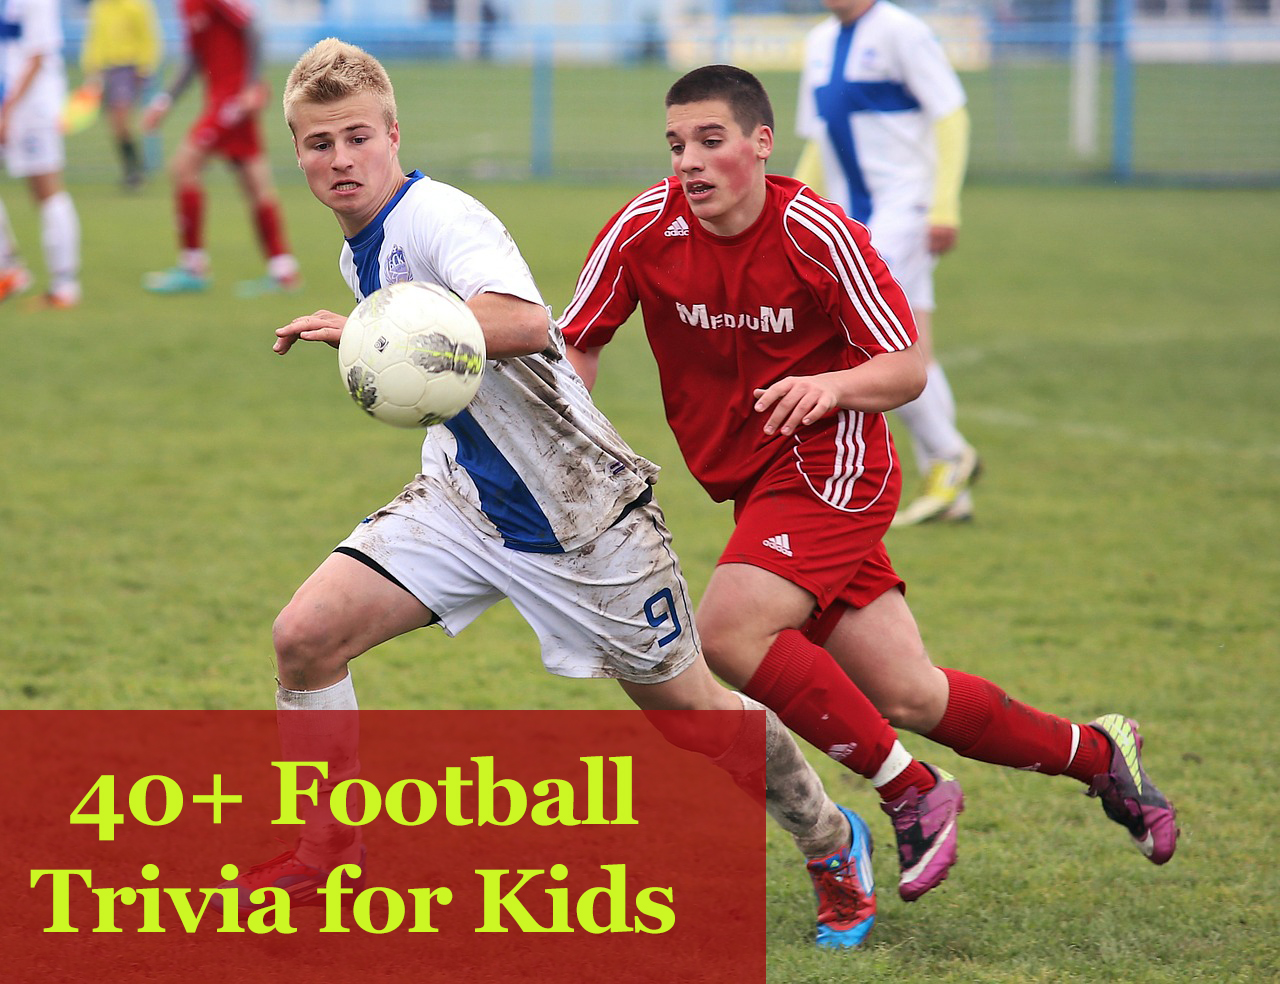 Football trivia for kids